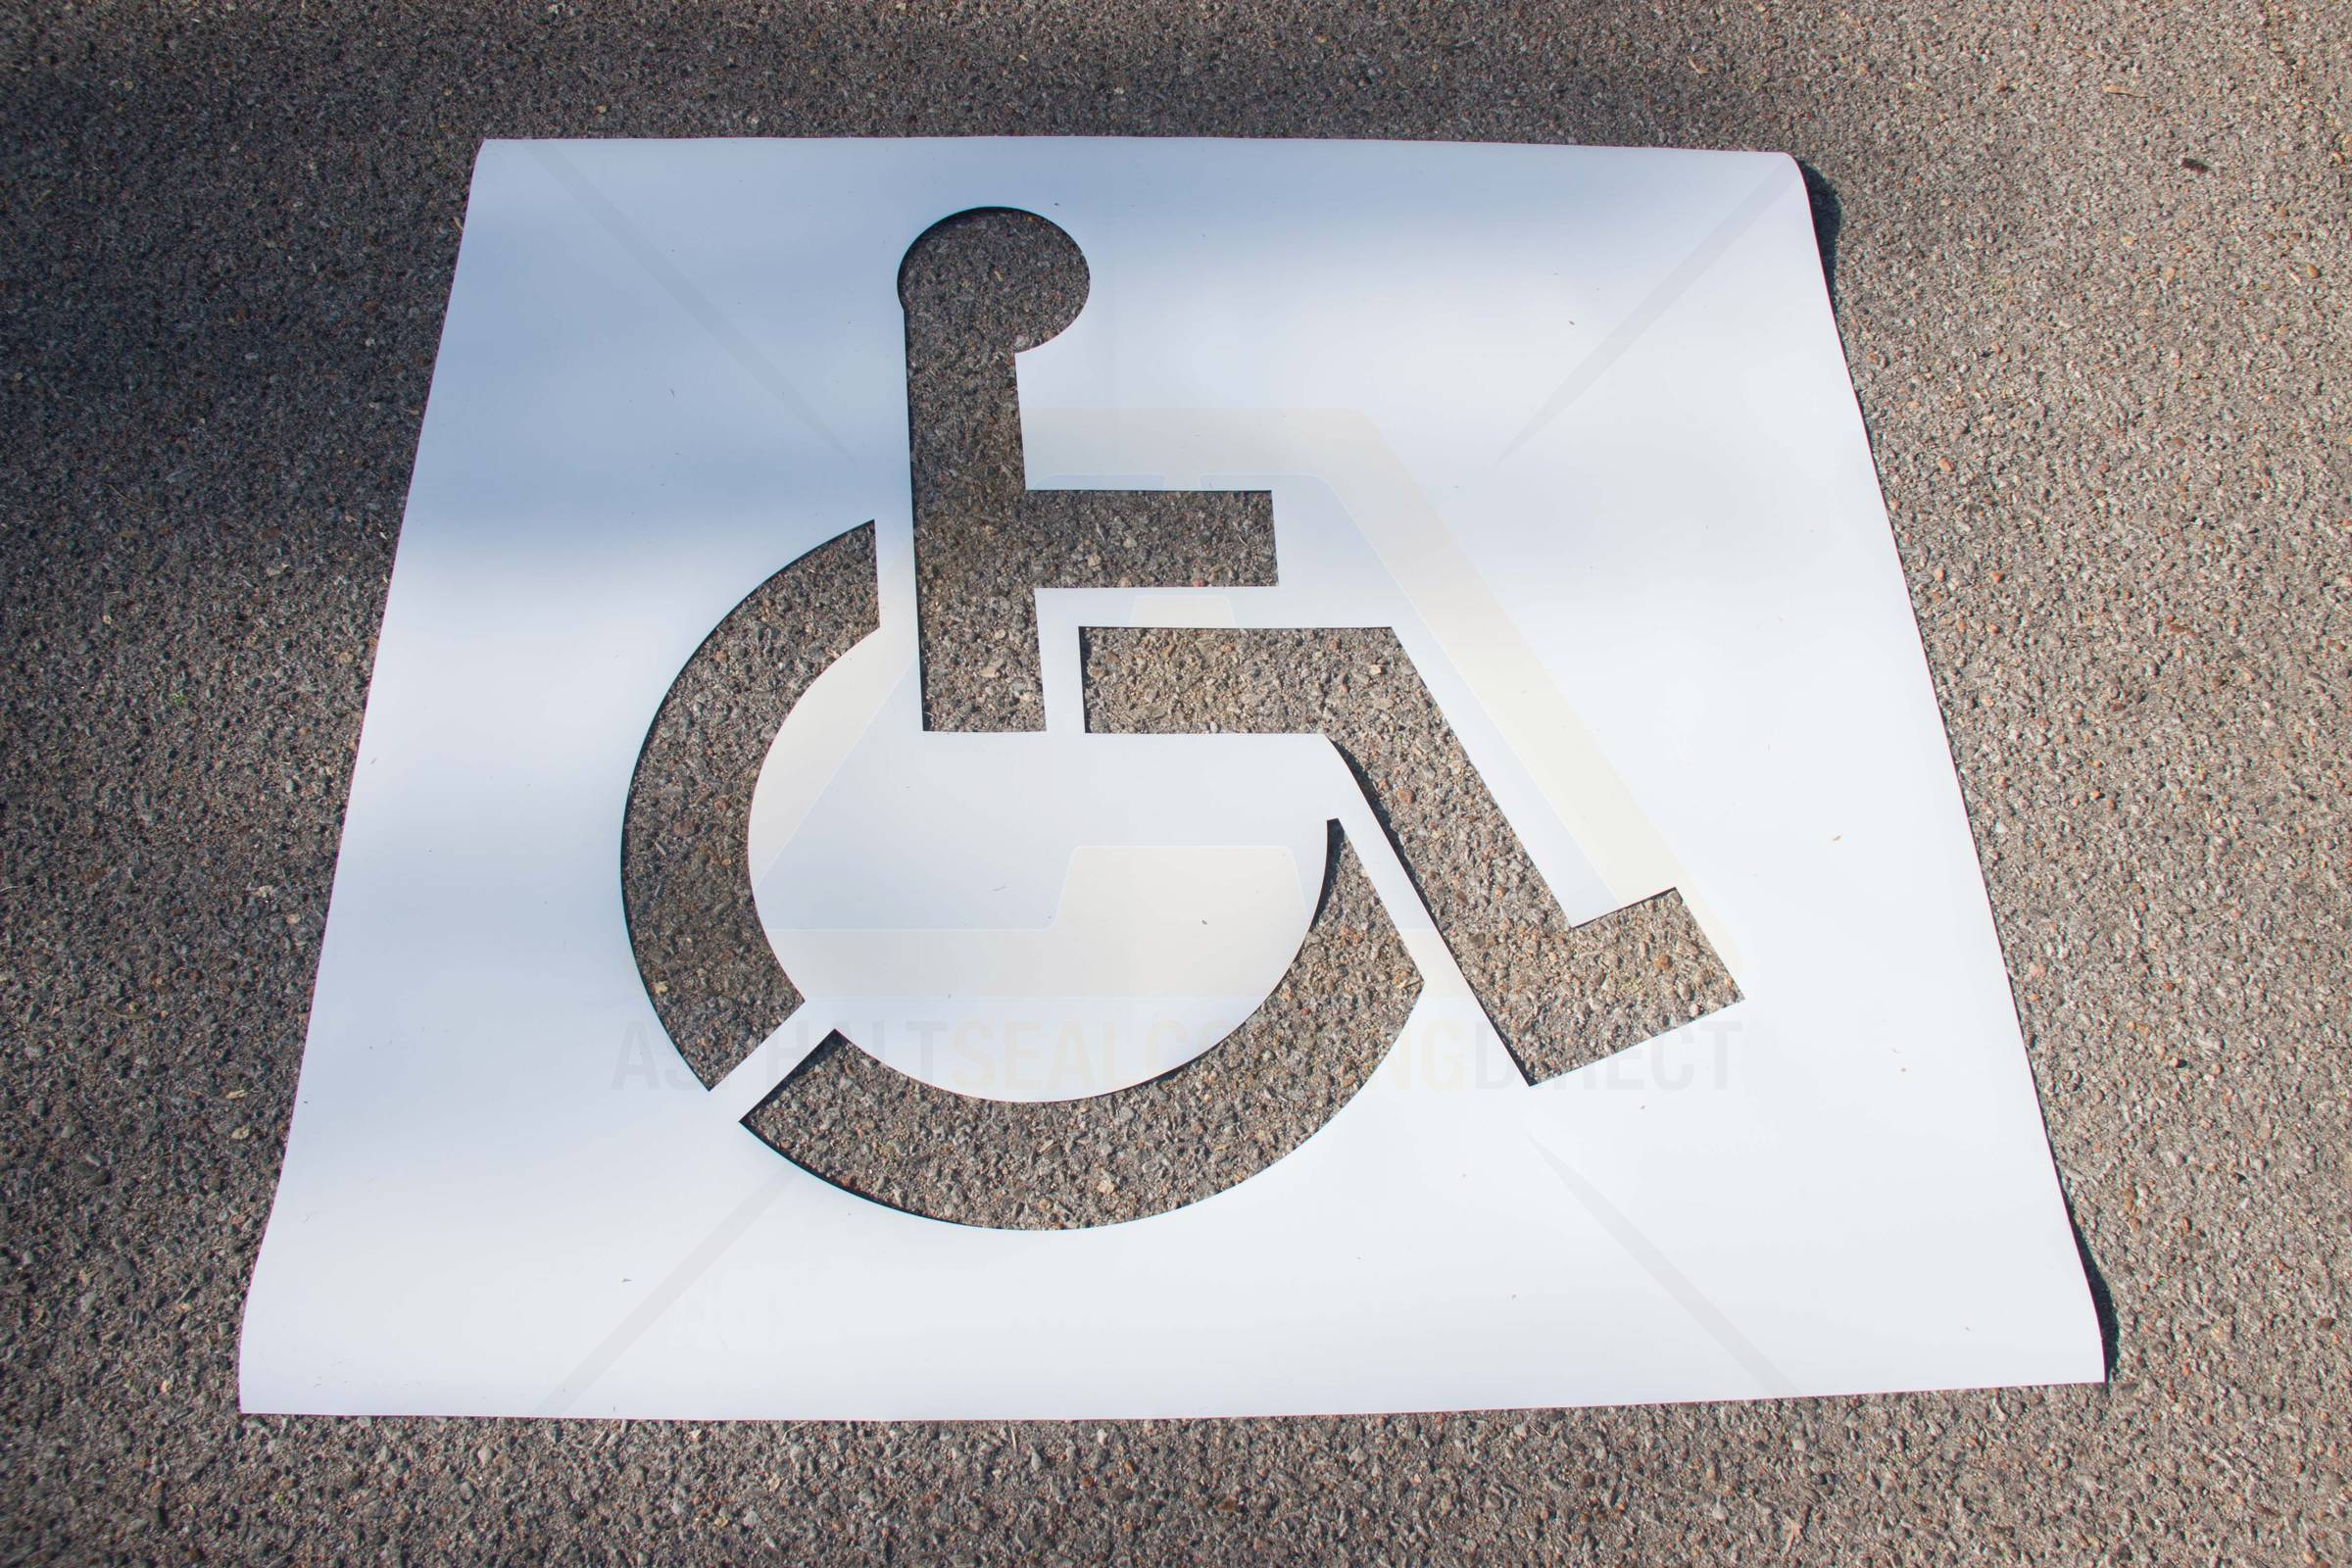 Big a disposable diy handicap stencil asphalt sealcoating direct image do it yourself handicap stencil solutioingenieria Gallery